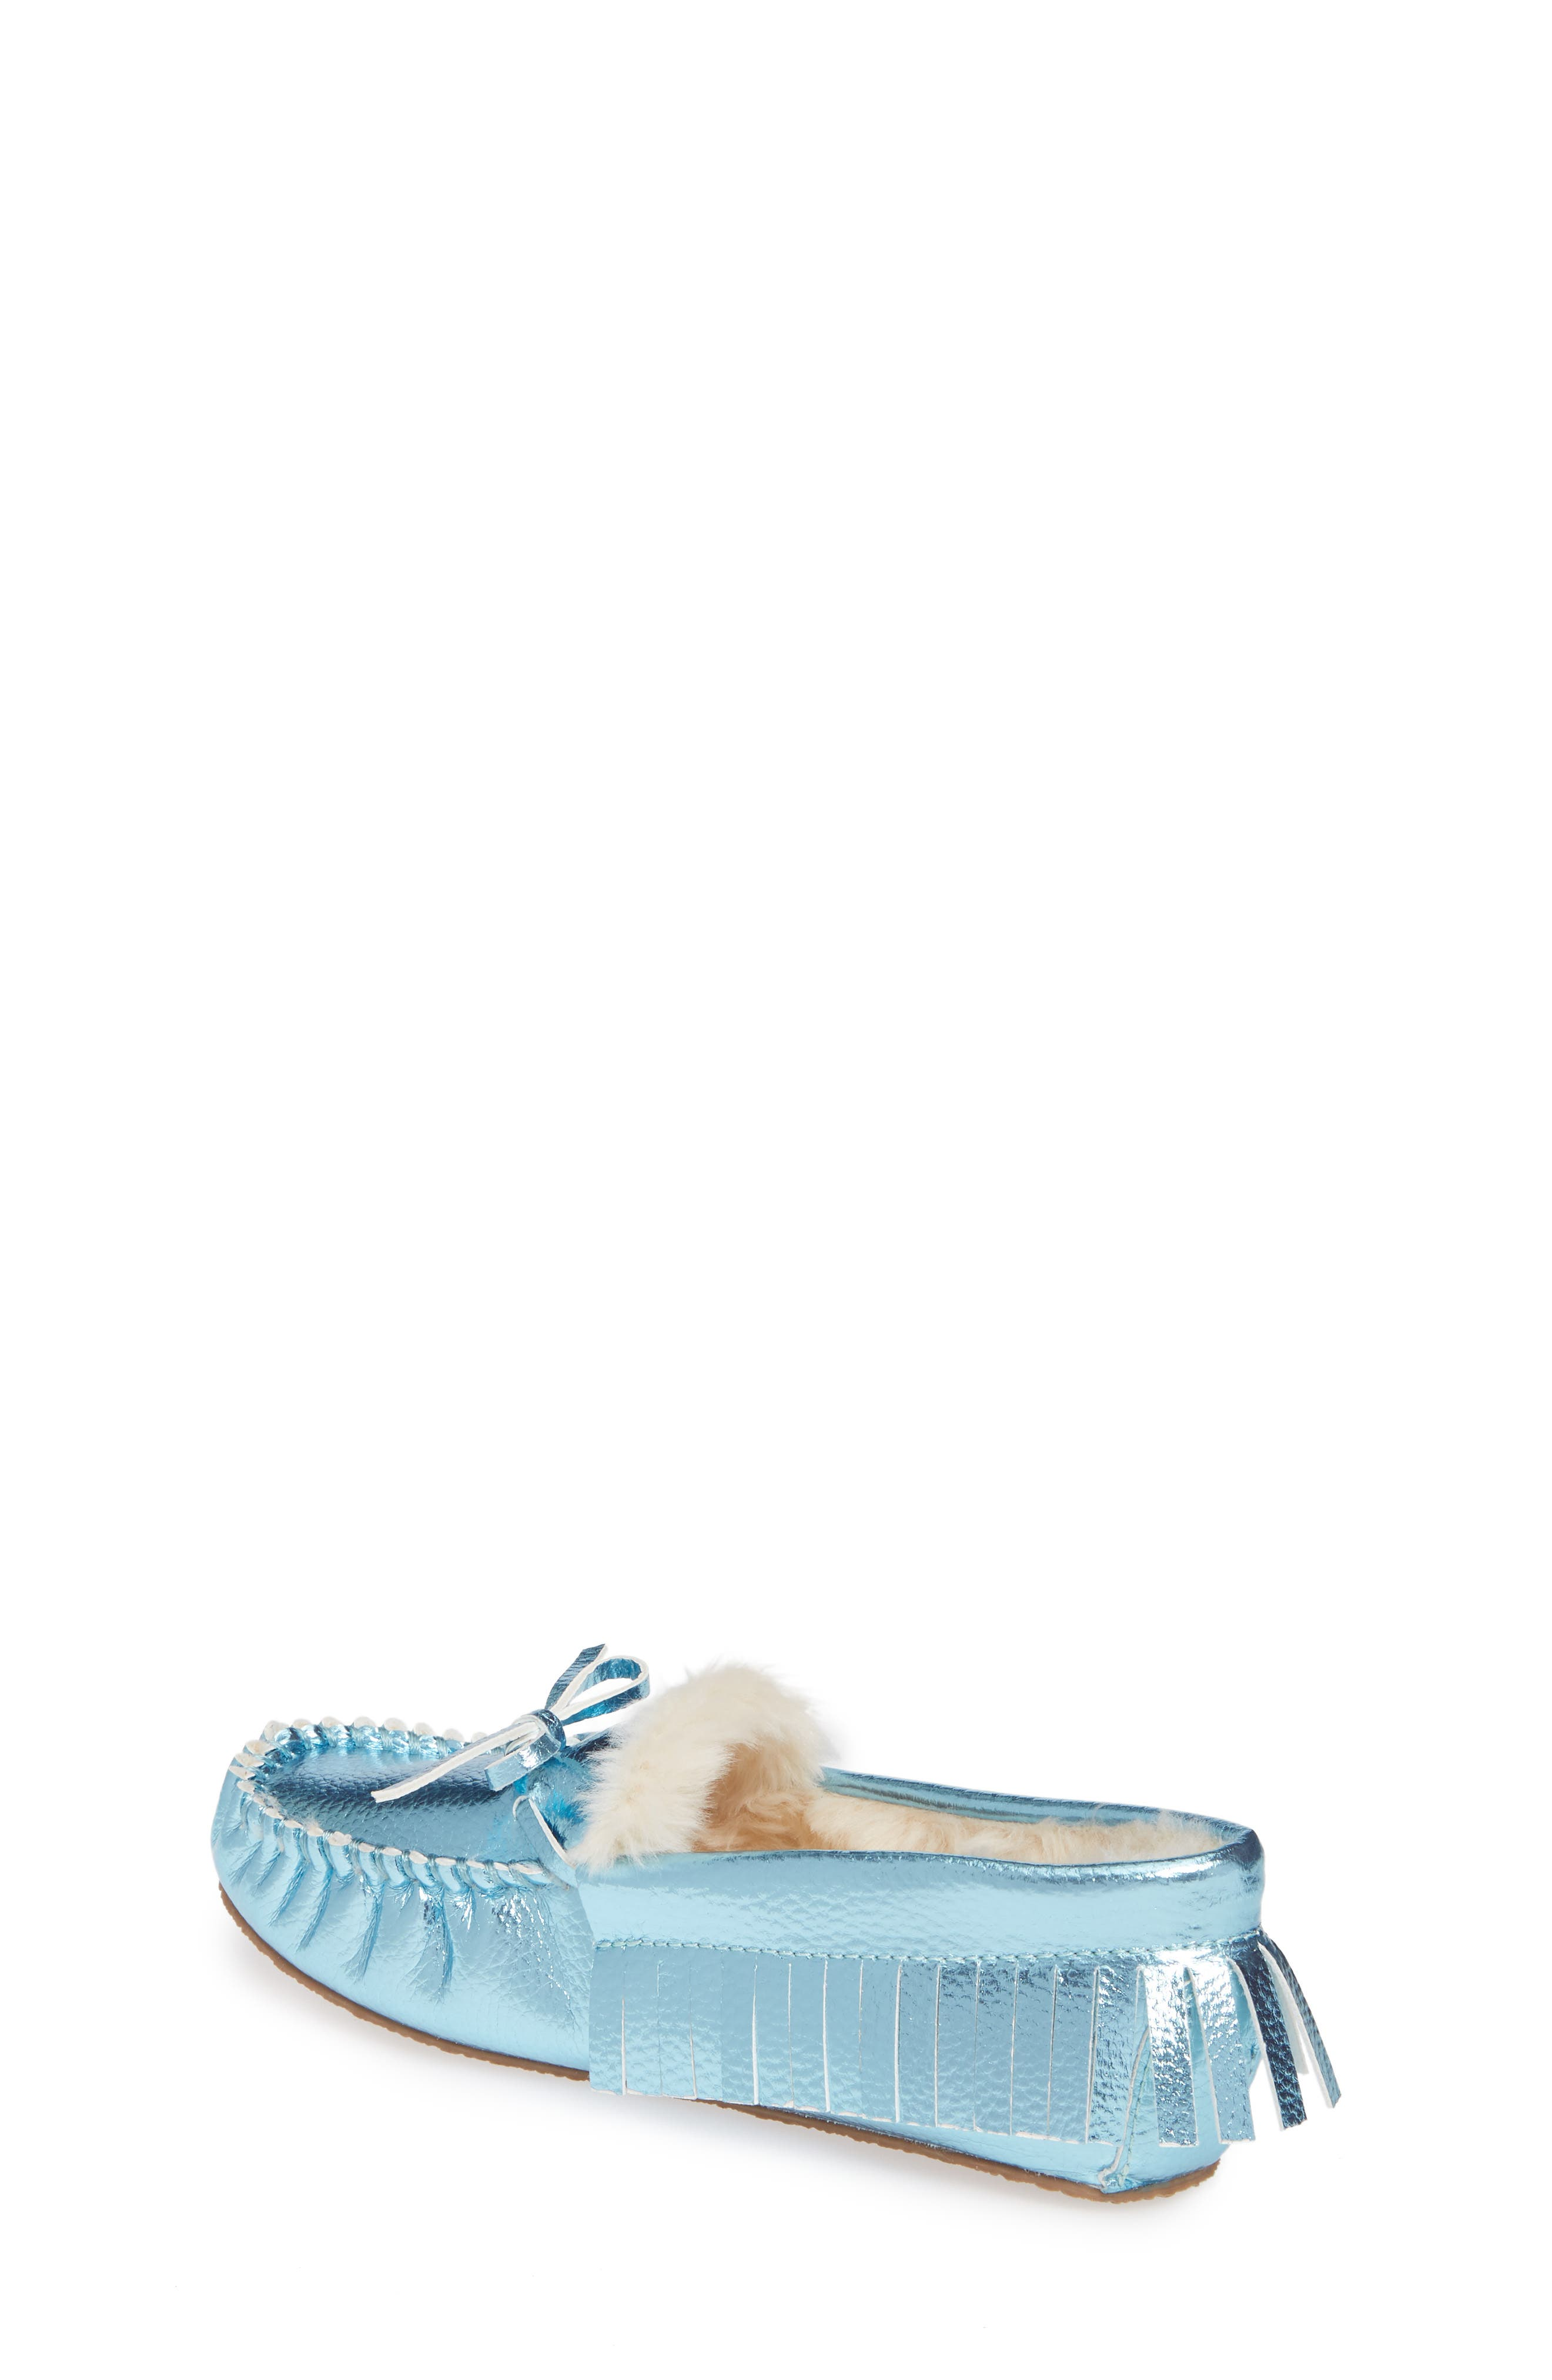 CREWCUTS BY J.CREW,                             Metallic Moccasin,                             Alternate thumbnail 2, color,                             FADED SKY